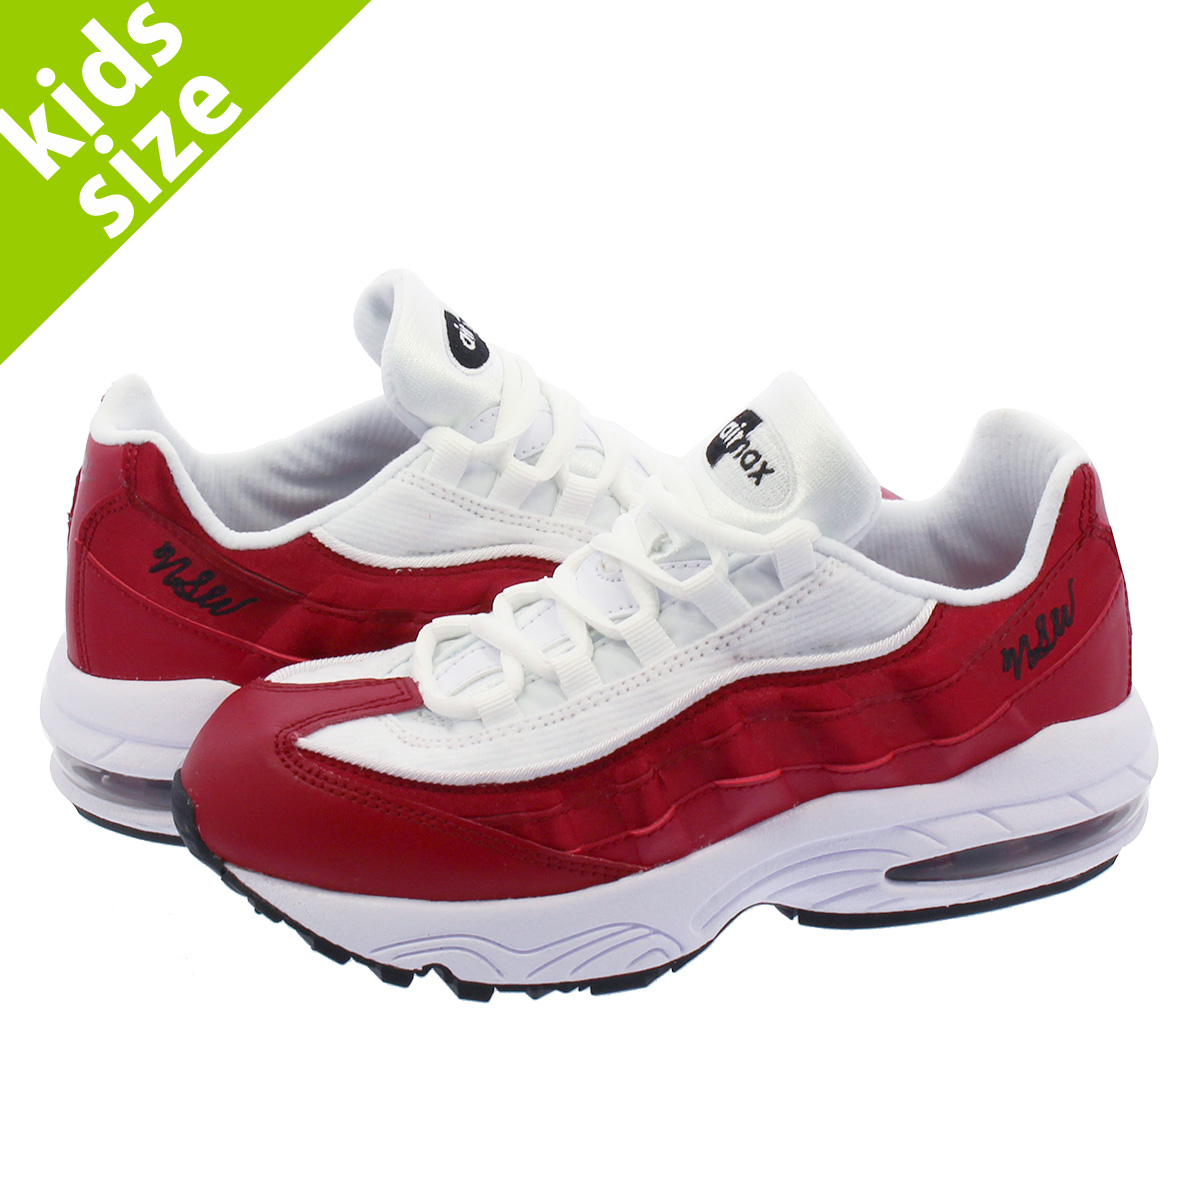 c0aafaa326 NIKE AIR MAX 95 SE PS Kie Ney AMAX SE PS RED CRUSH/WHITE/BLACK ao9211-600